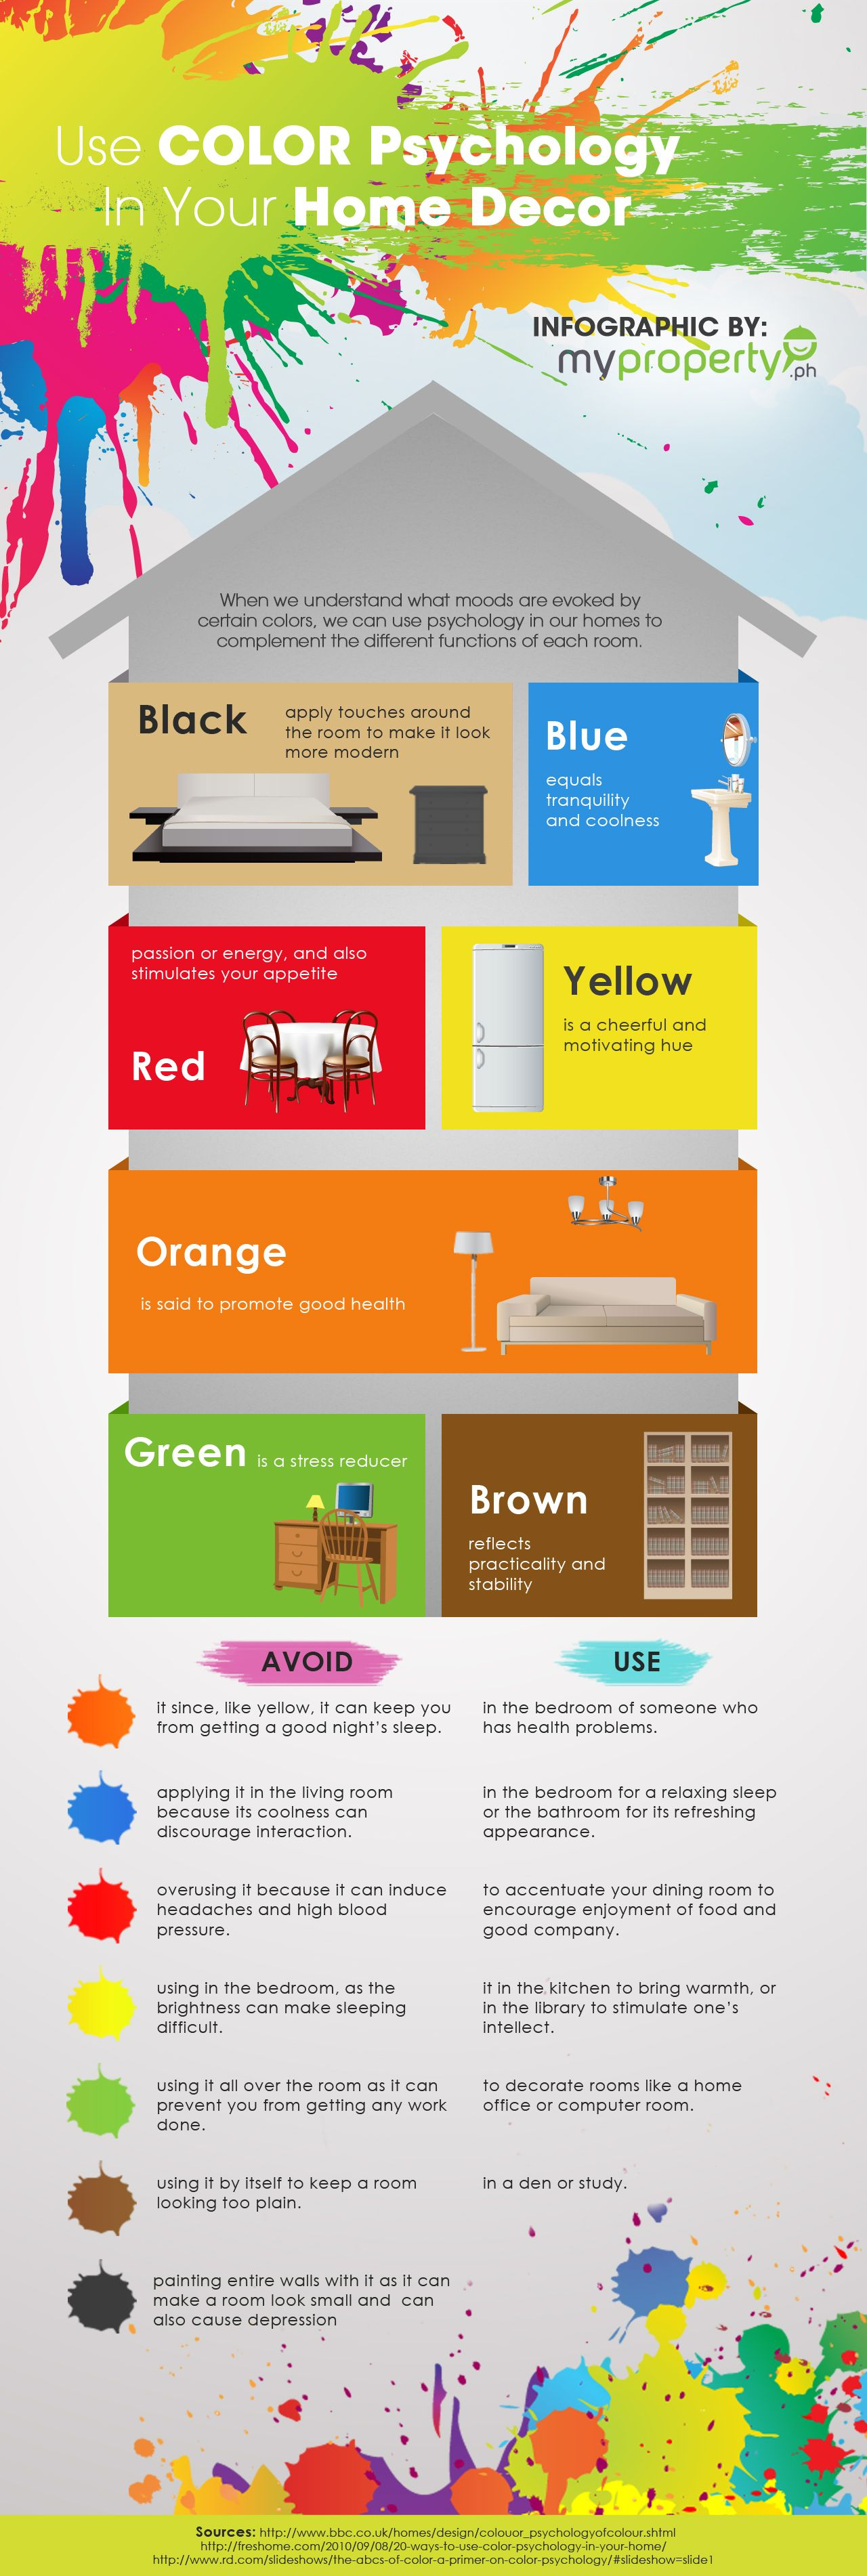 Use Color Psychology In Your Home Decor Realestate